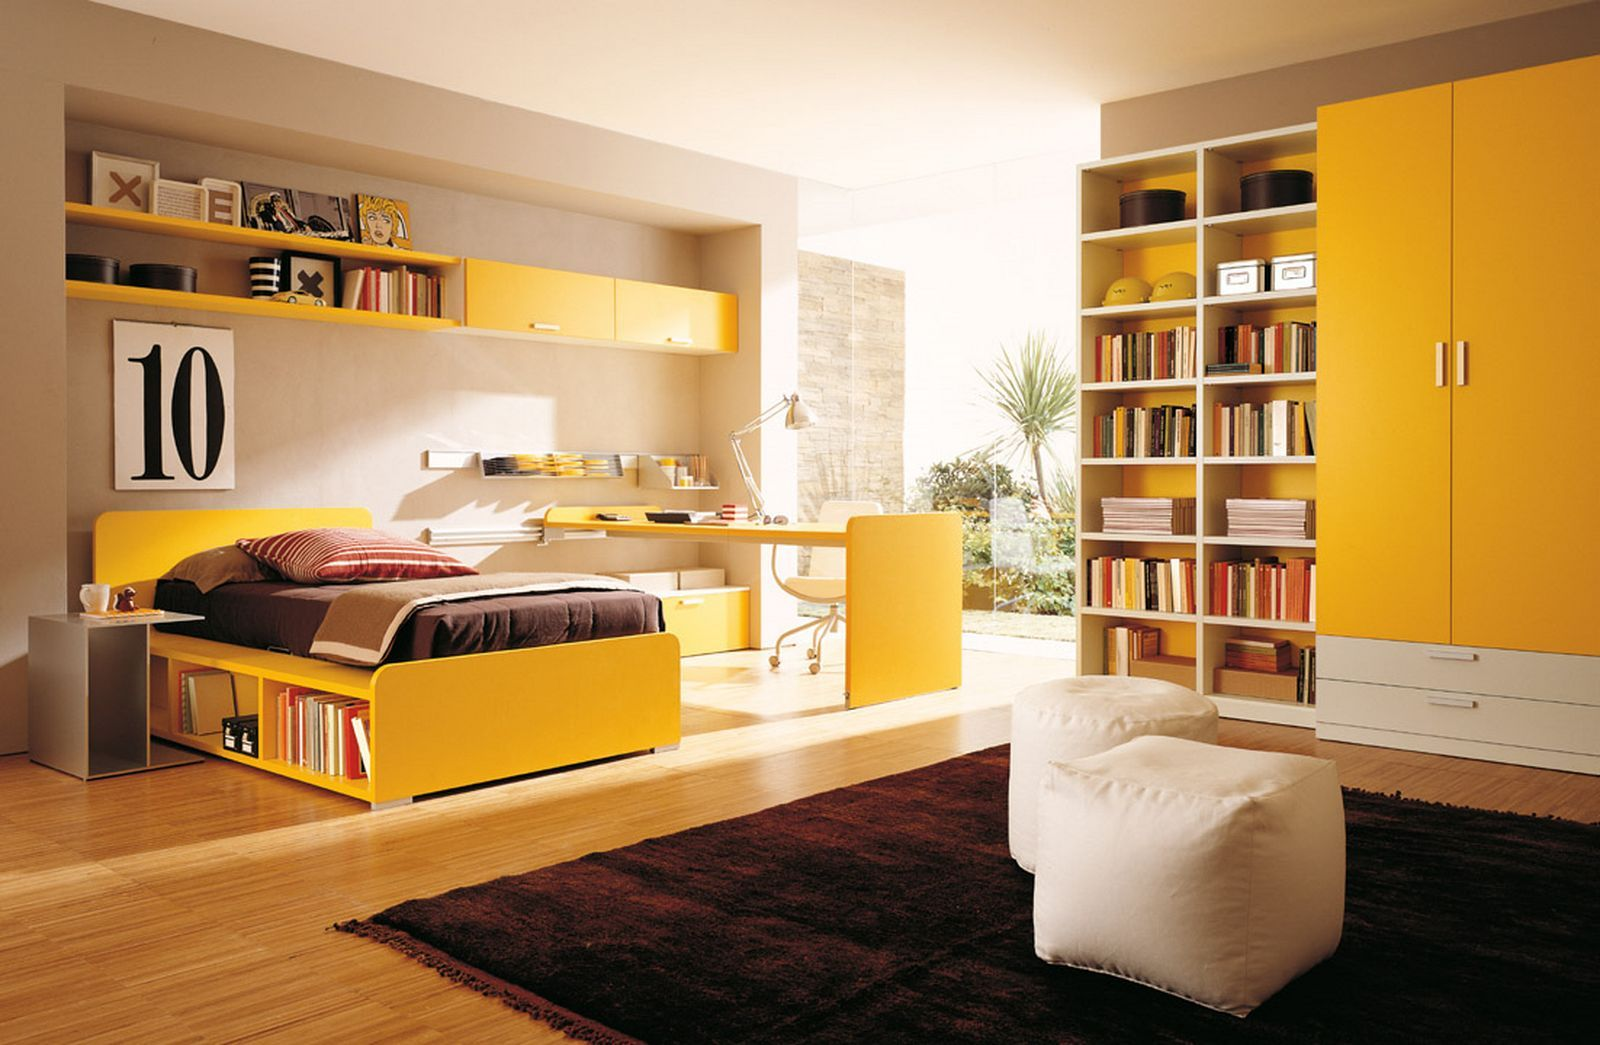 Bedrooms | light colors make roomsaway and look great yellow color ...